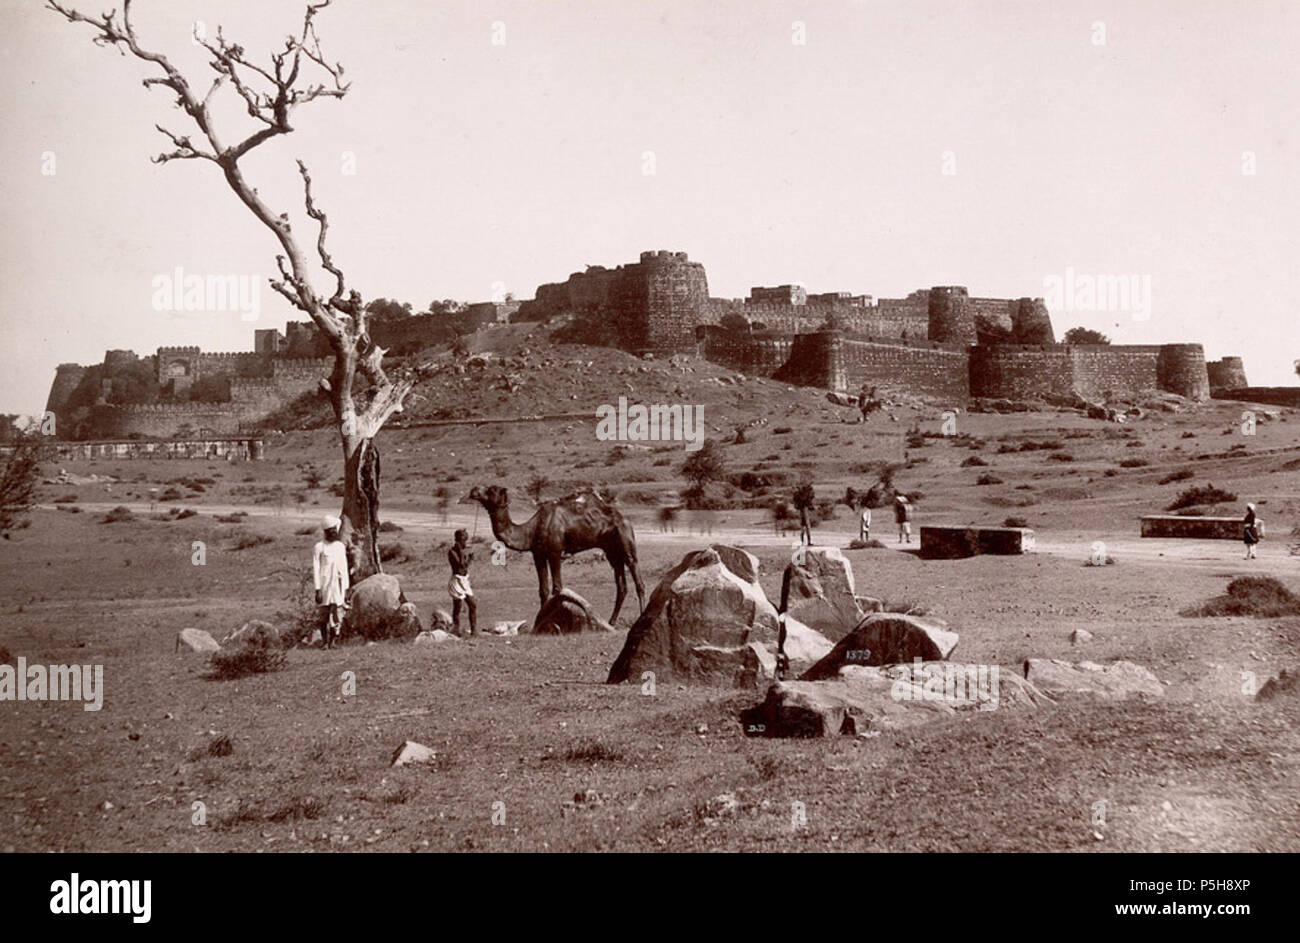 Image result for Photograph of Jhansi Fort taken in 1882 by Lala Deen Dayal, from the Lee-Warner Collection: